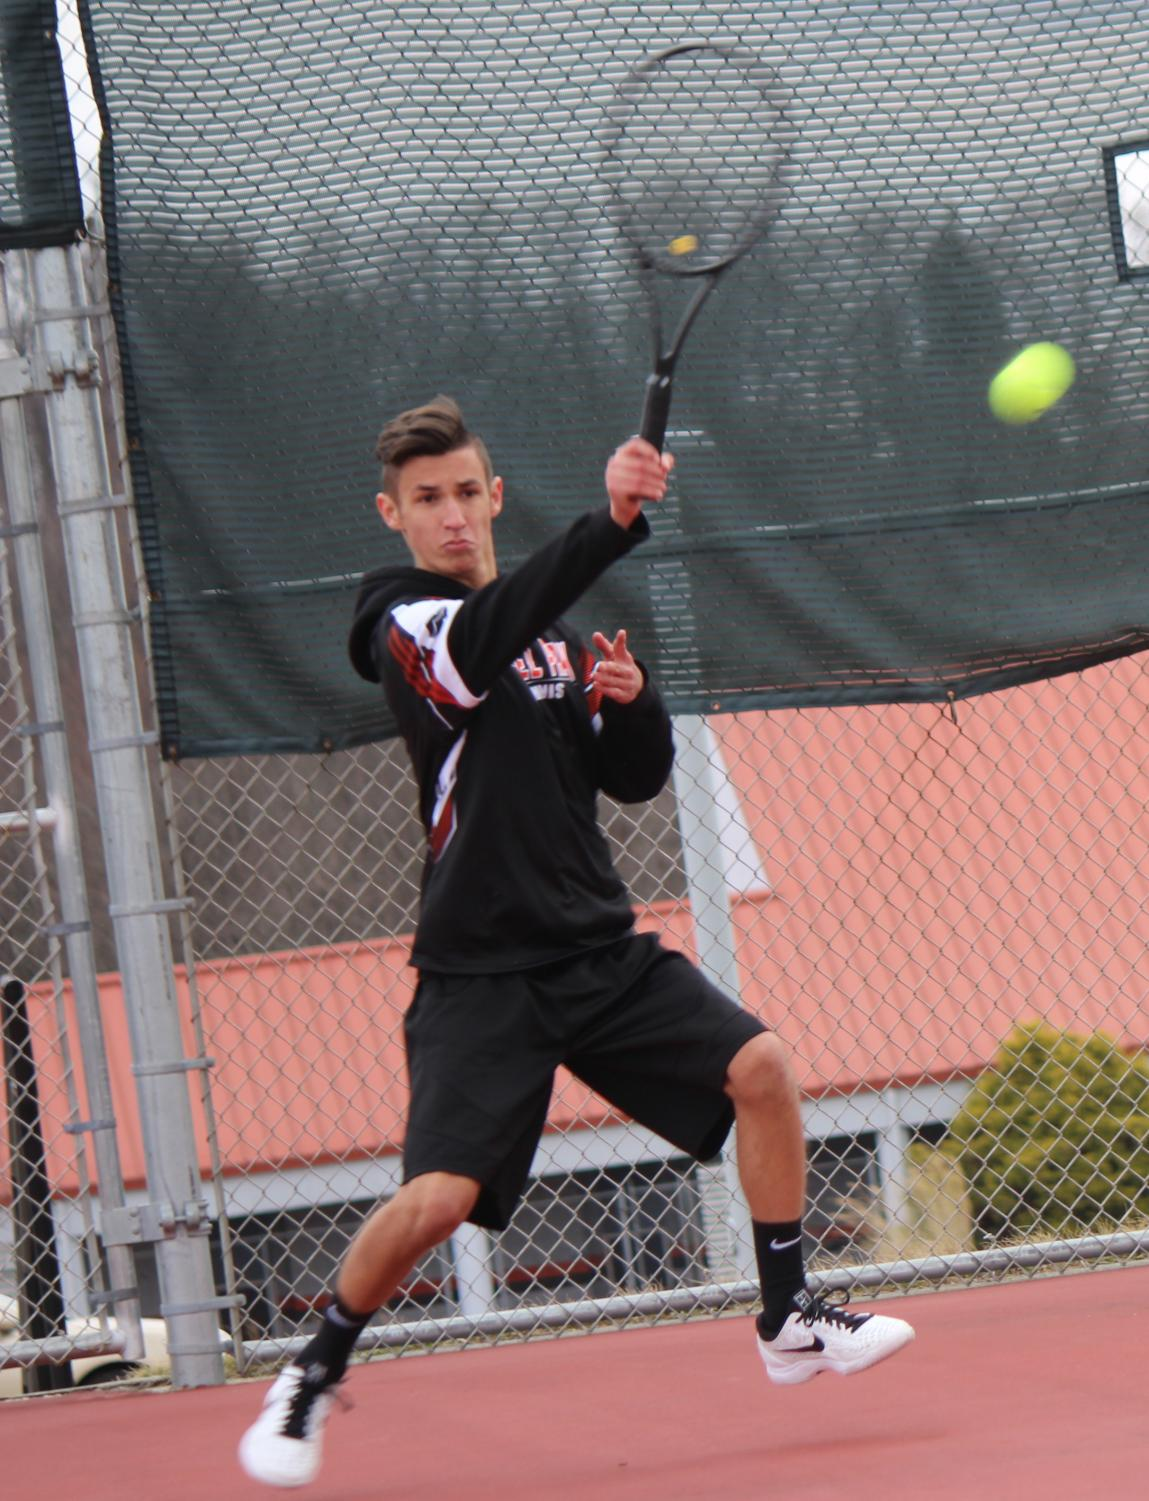 James+hitting+a+forehand+